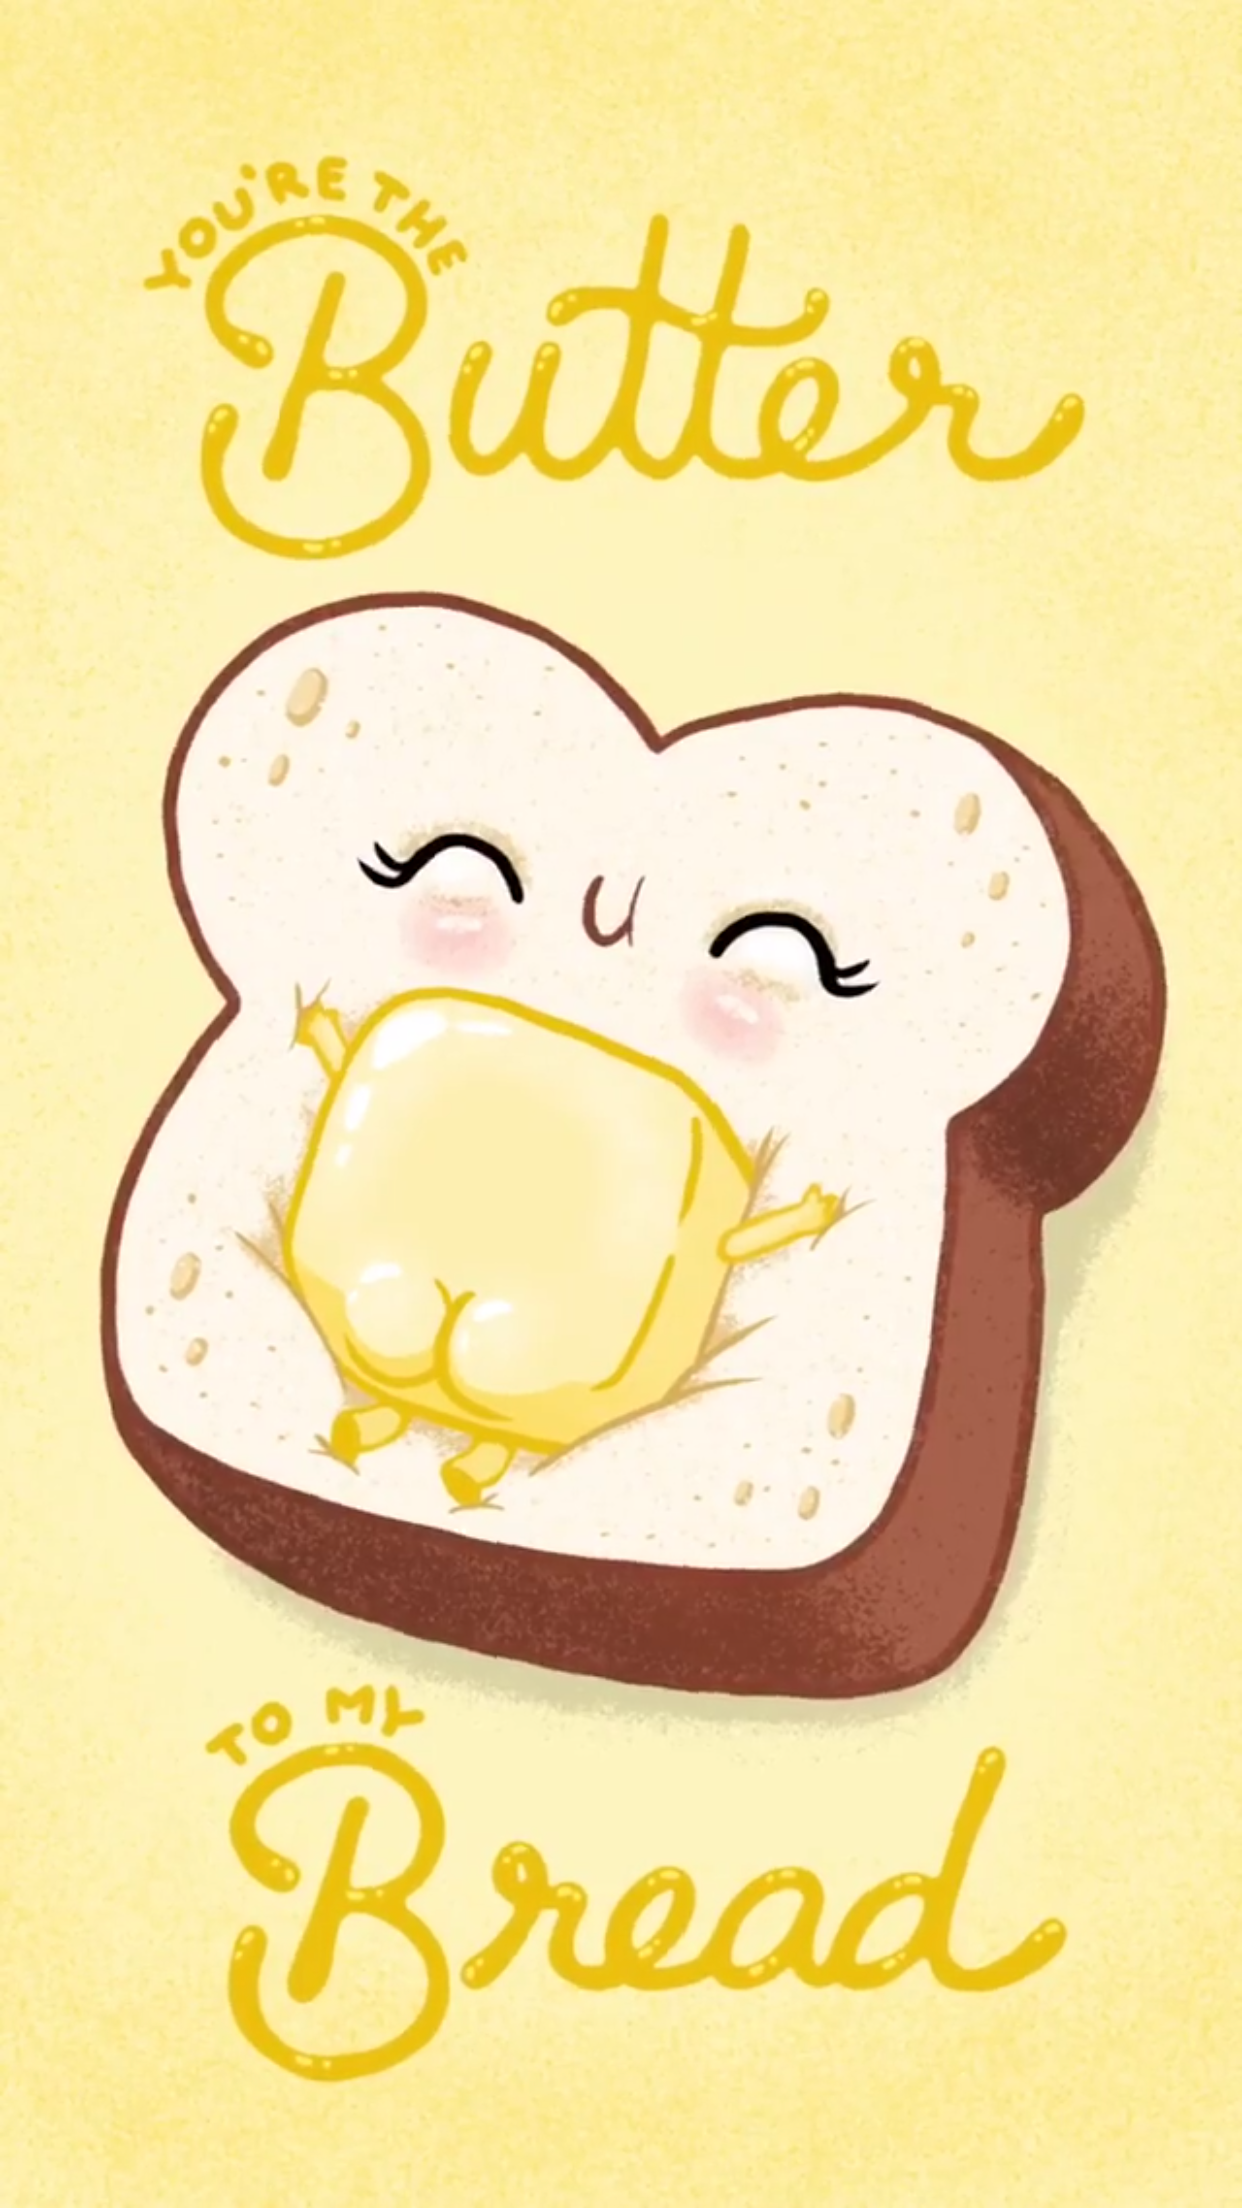 You Re The Butter To My Bread Food Puns Mates Background Wallpaper Lock Screen For Cellphone Iphone Android Cute Doodles Cute Food Drawings Cute Drawings